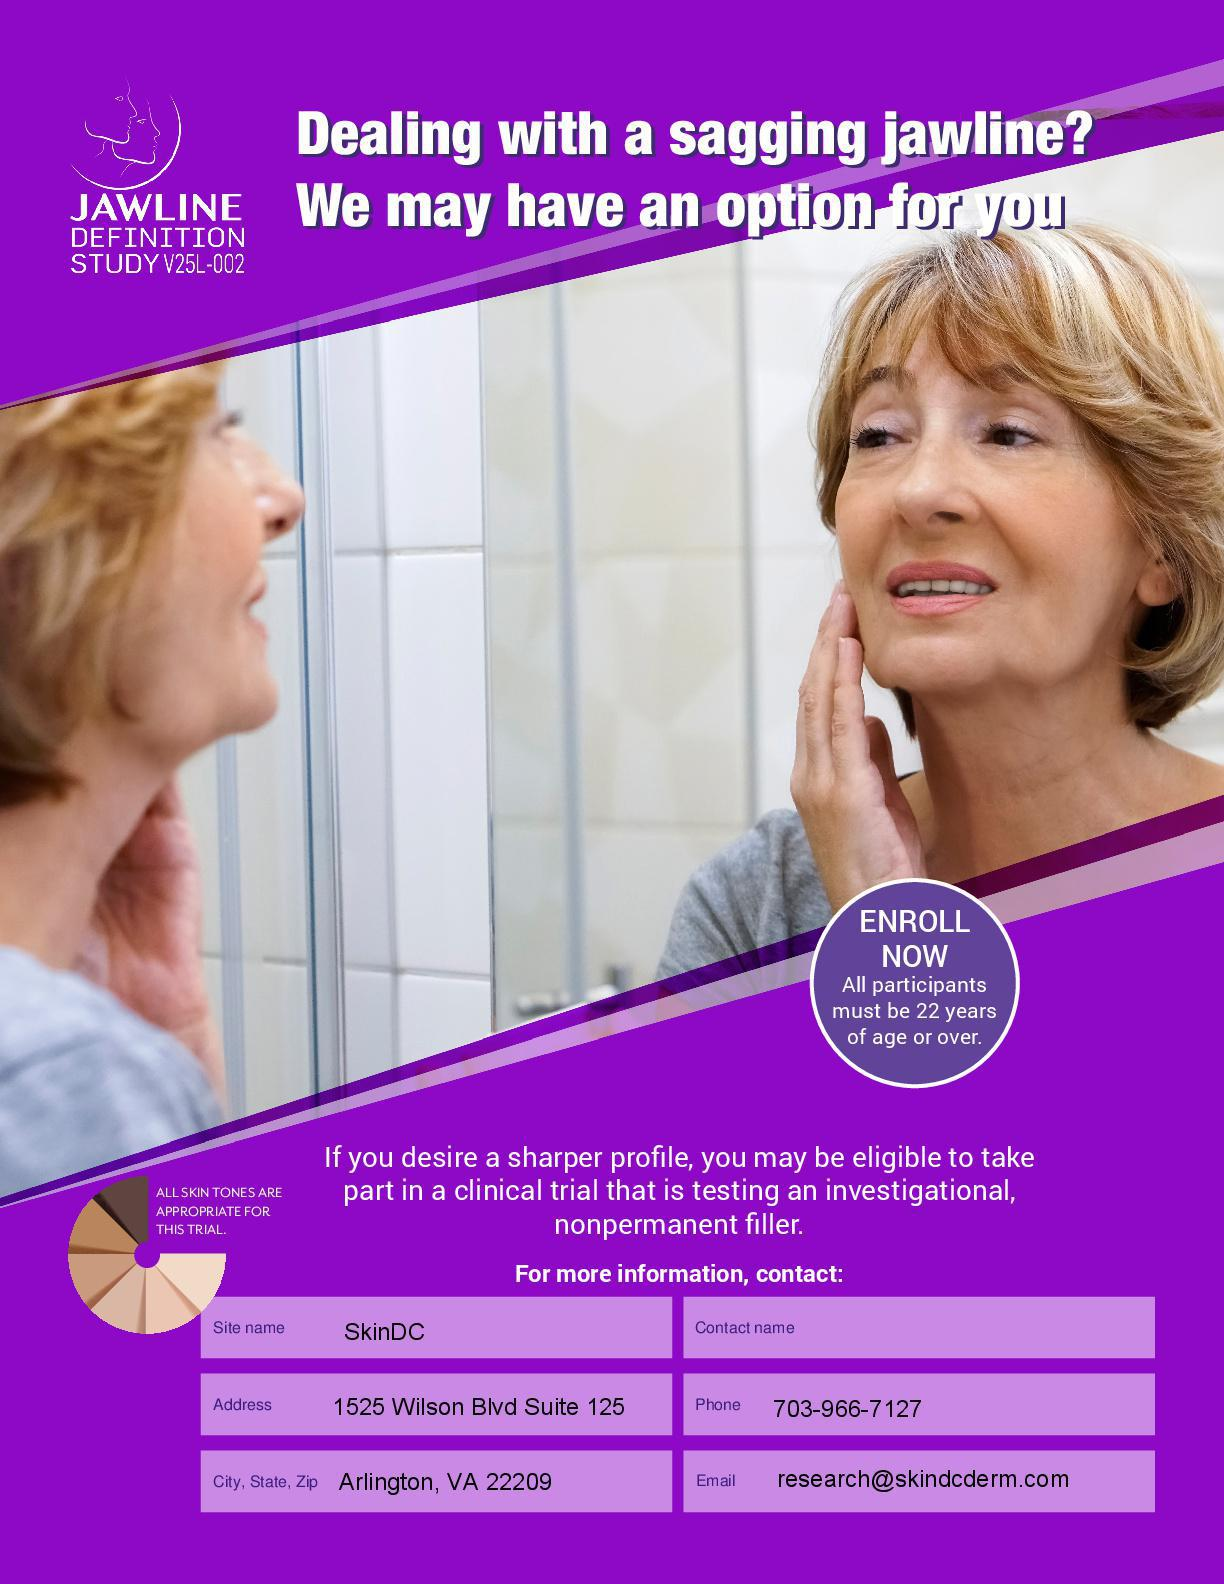 Jawline Definition Study flyer